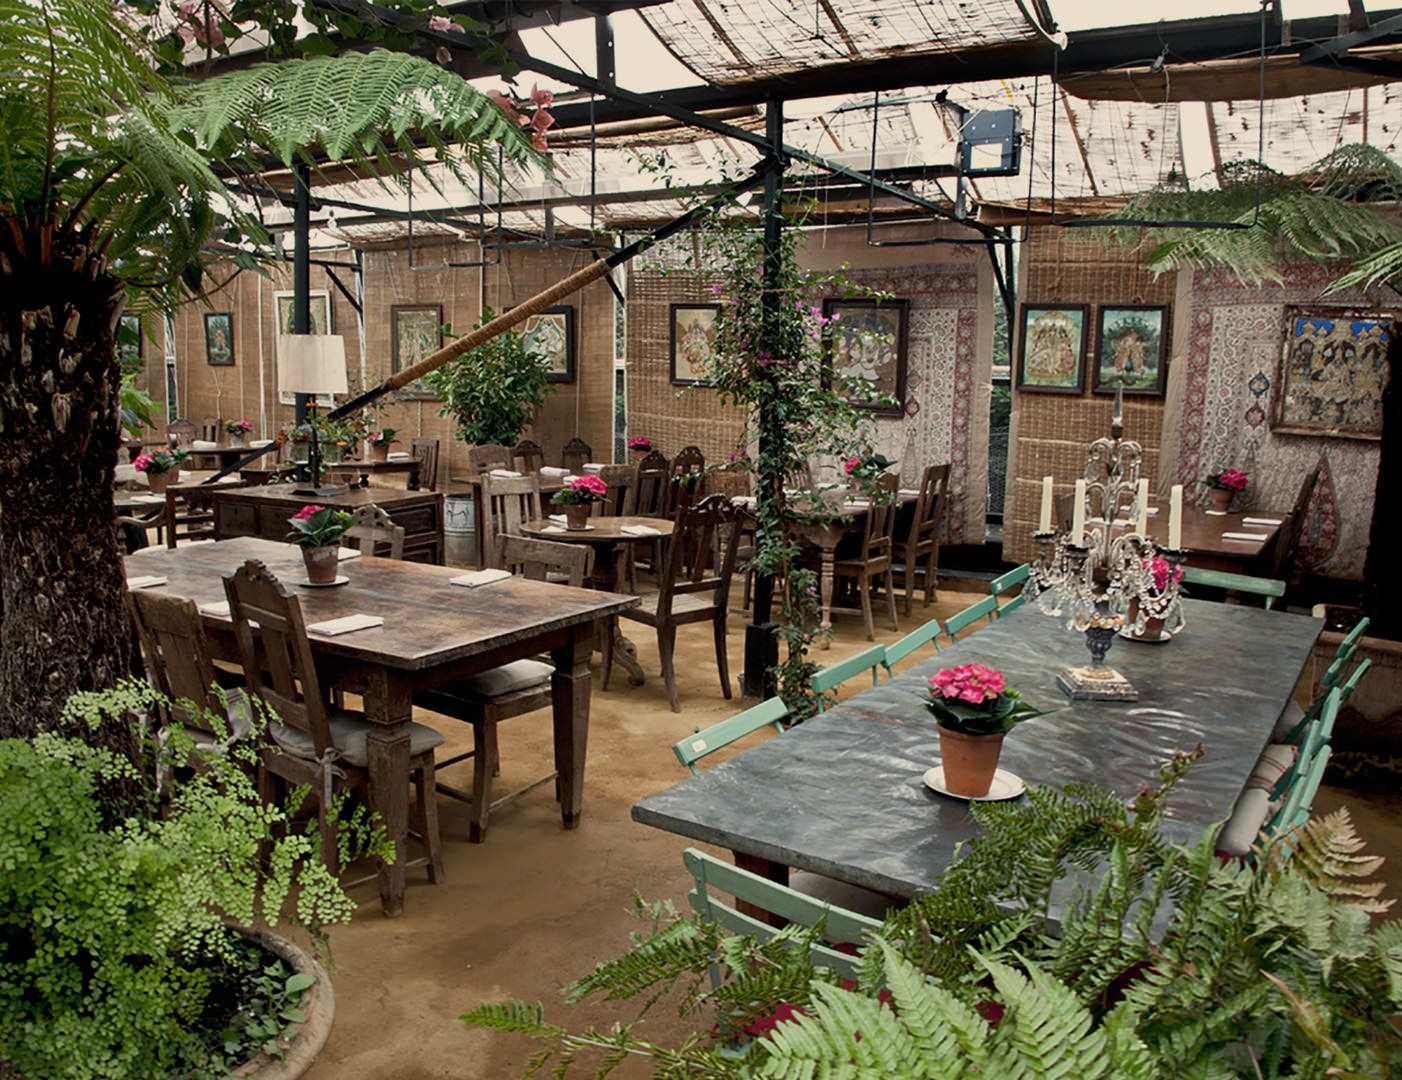 Garden Centre: Lovely Outdoor/indoor Eating Space- Layout For An Outdoor